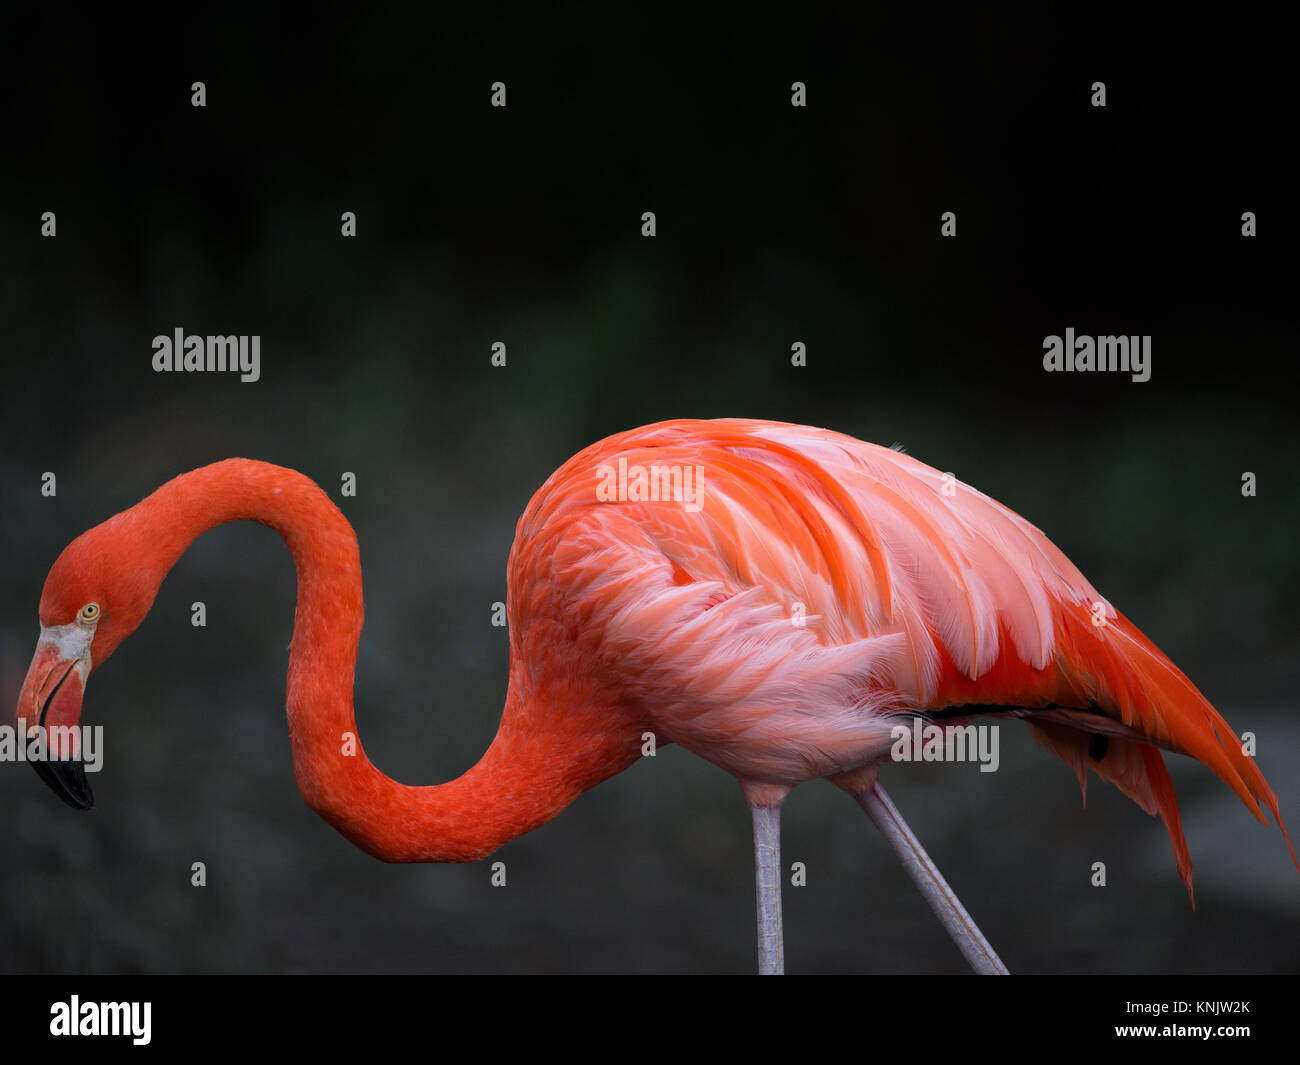 Miami, Forida, USA. 8th Dec, 2013. Flamingos range in color from light pink to bright red due to aqueous bacteria - Stock Image